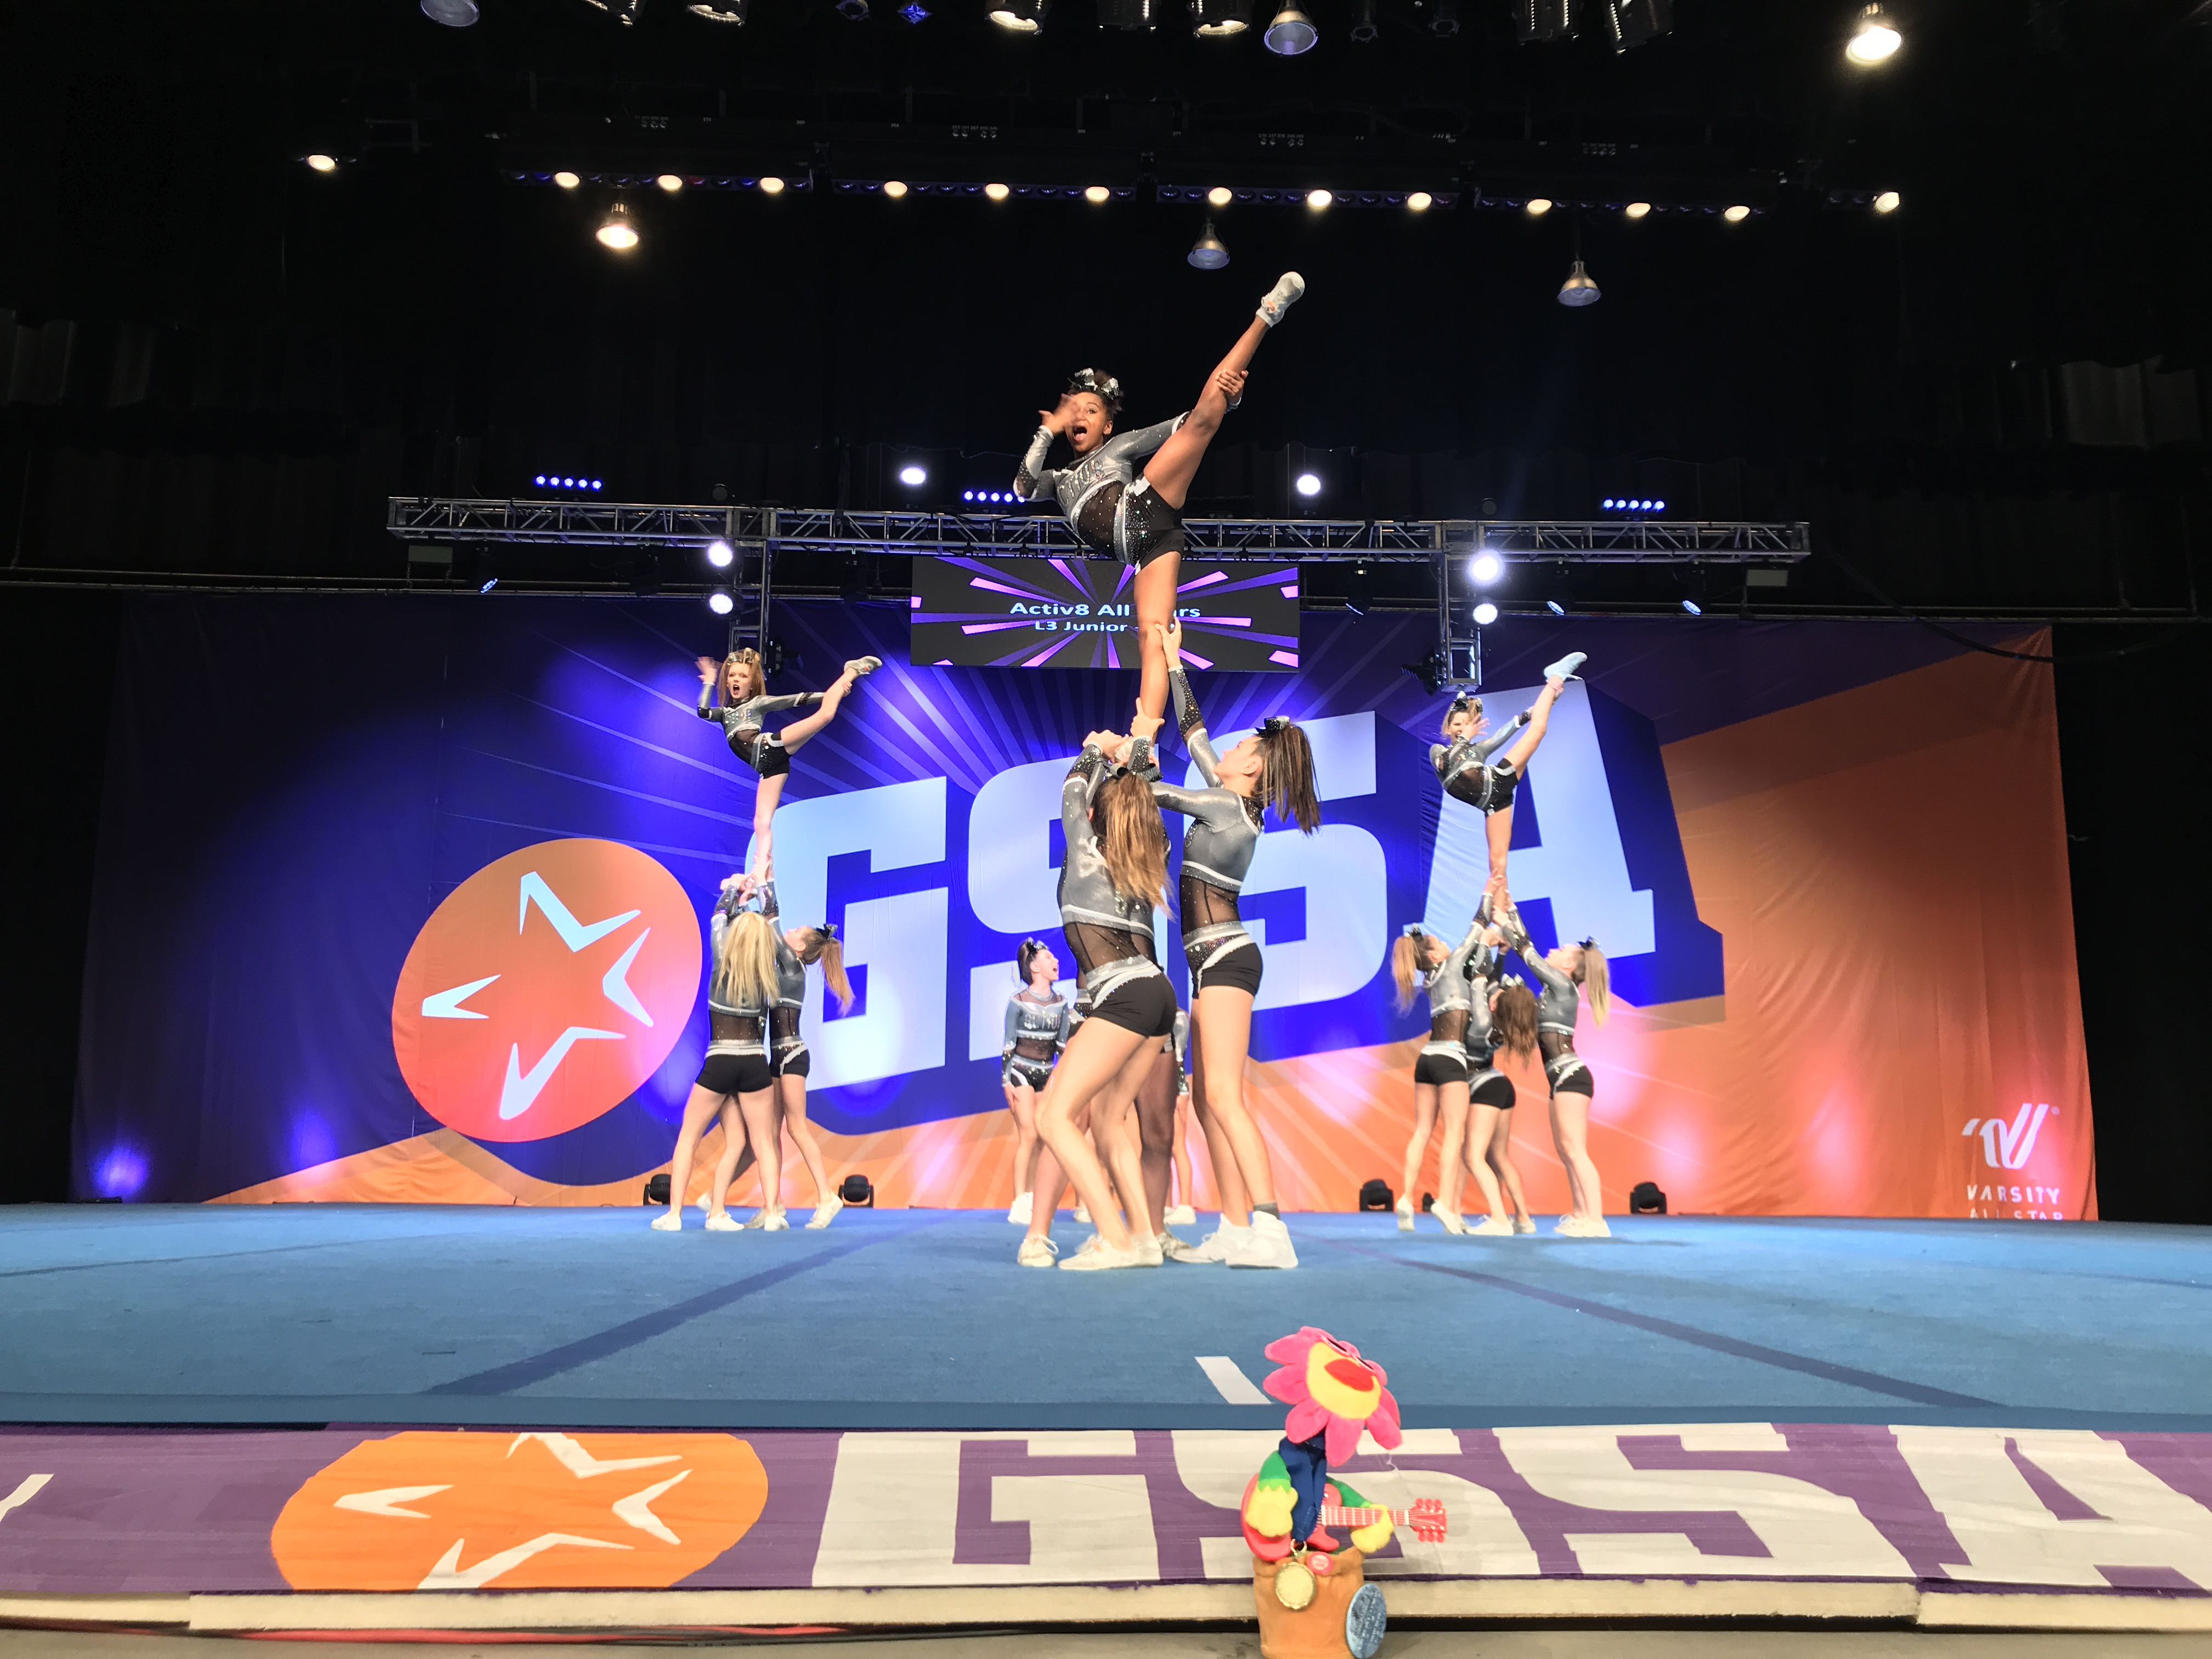 Activ8 cheer squads taking new approach